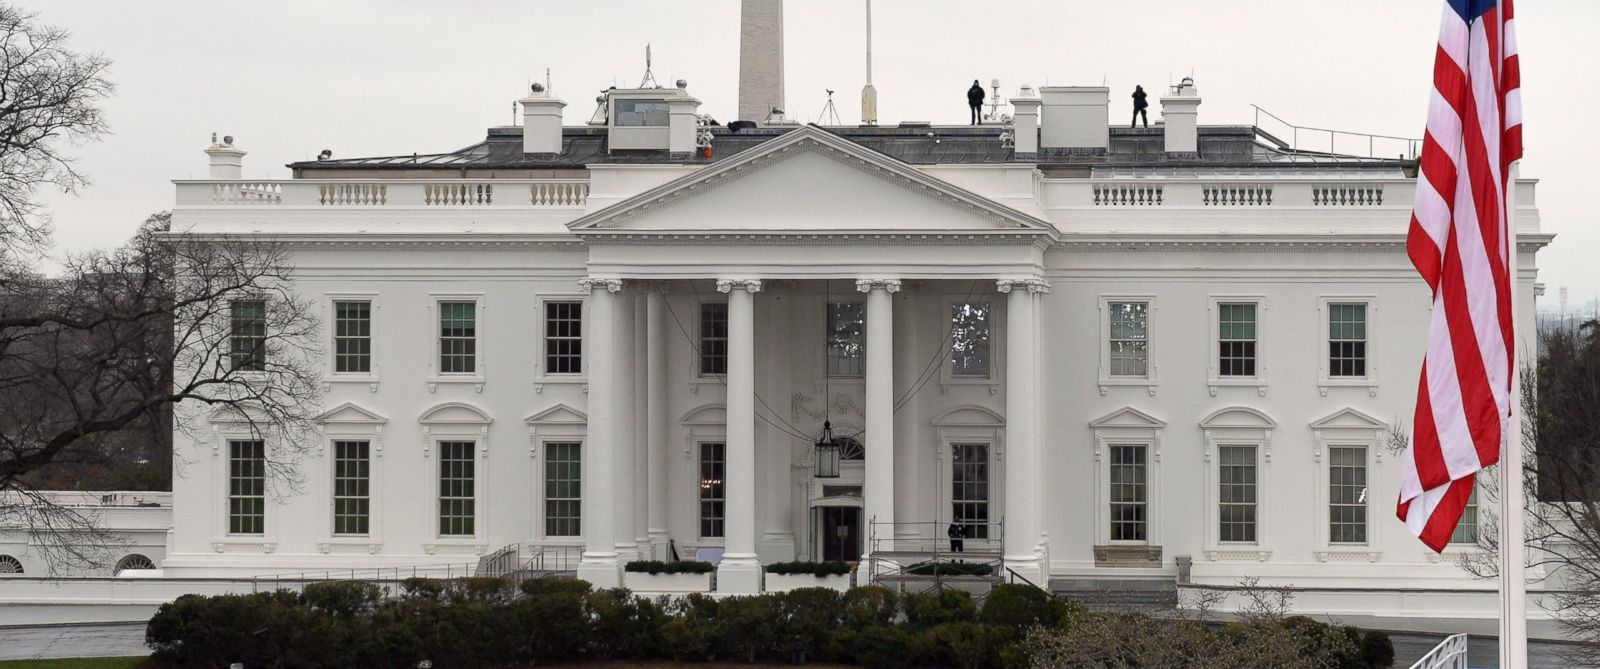 Intruder Scaled Fence To Enter White House Grounds Friday